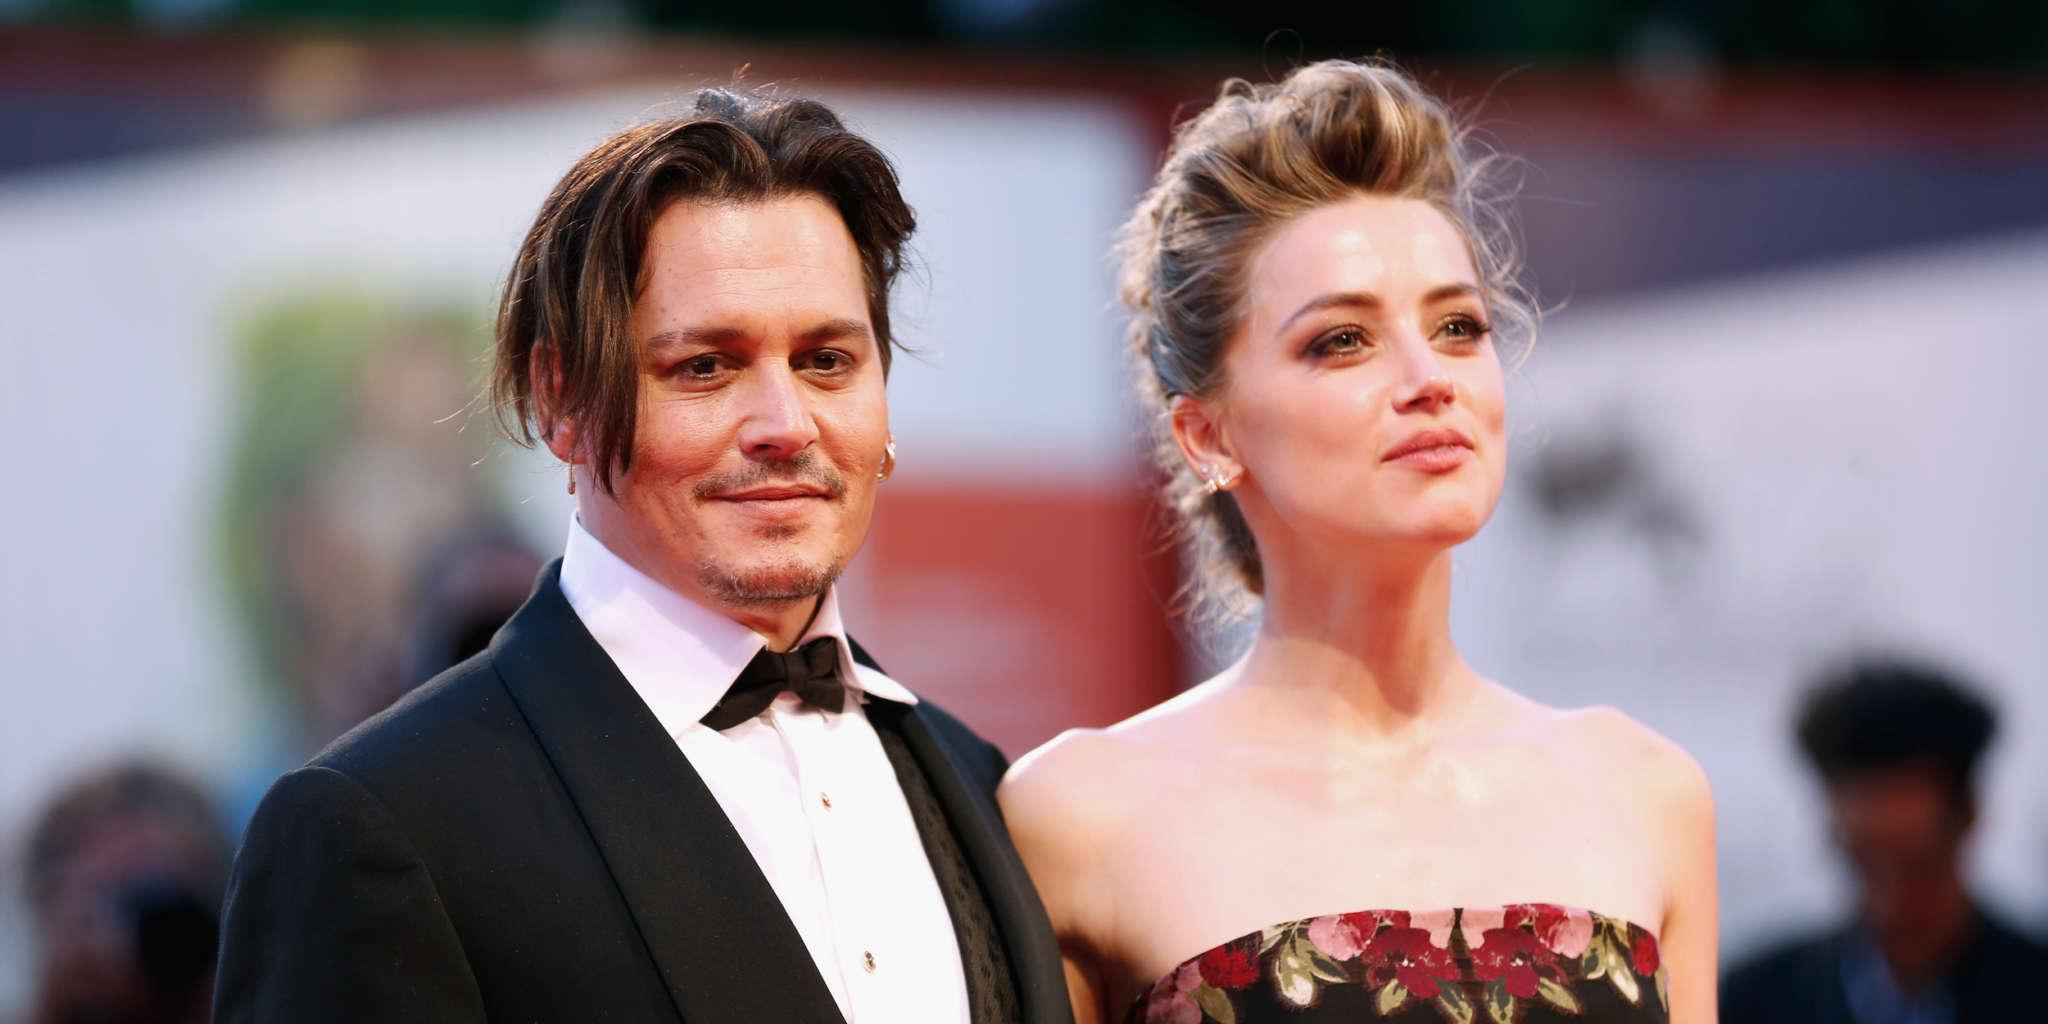 Amber Heard Slams Rumors She's Been Fired From Aquaman 2 After Petition To Remove Her Reaches 1 Million Signatures